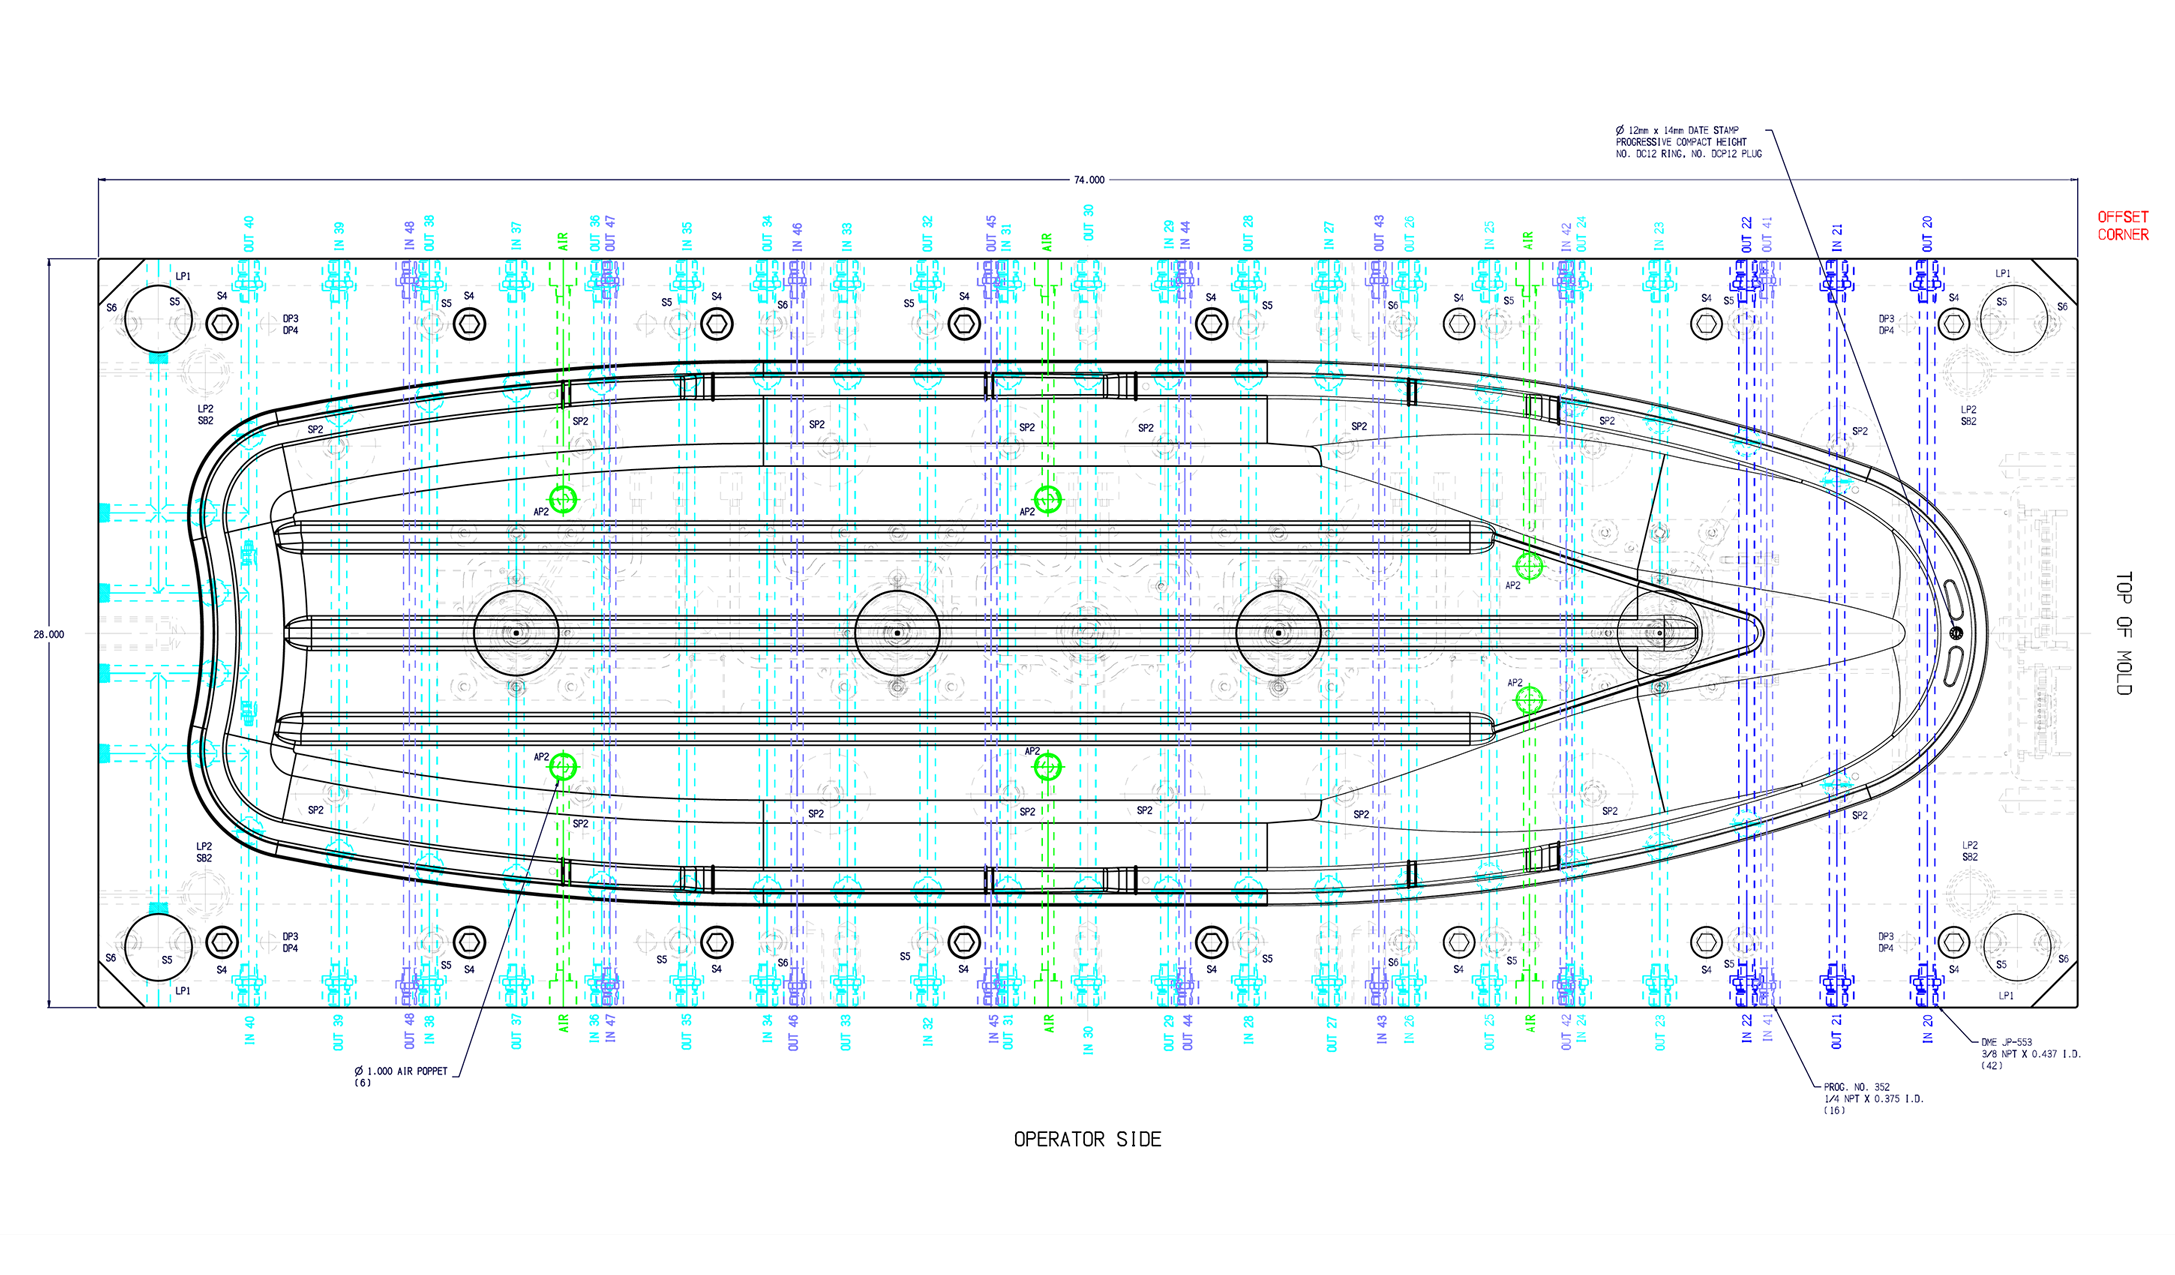 injection mold plan view.png